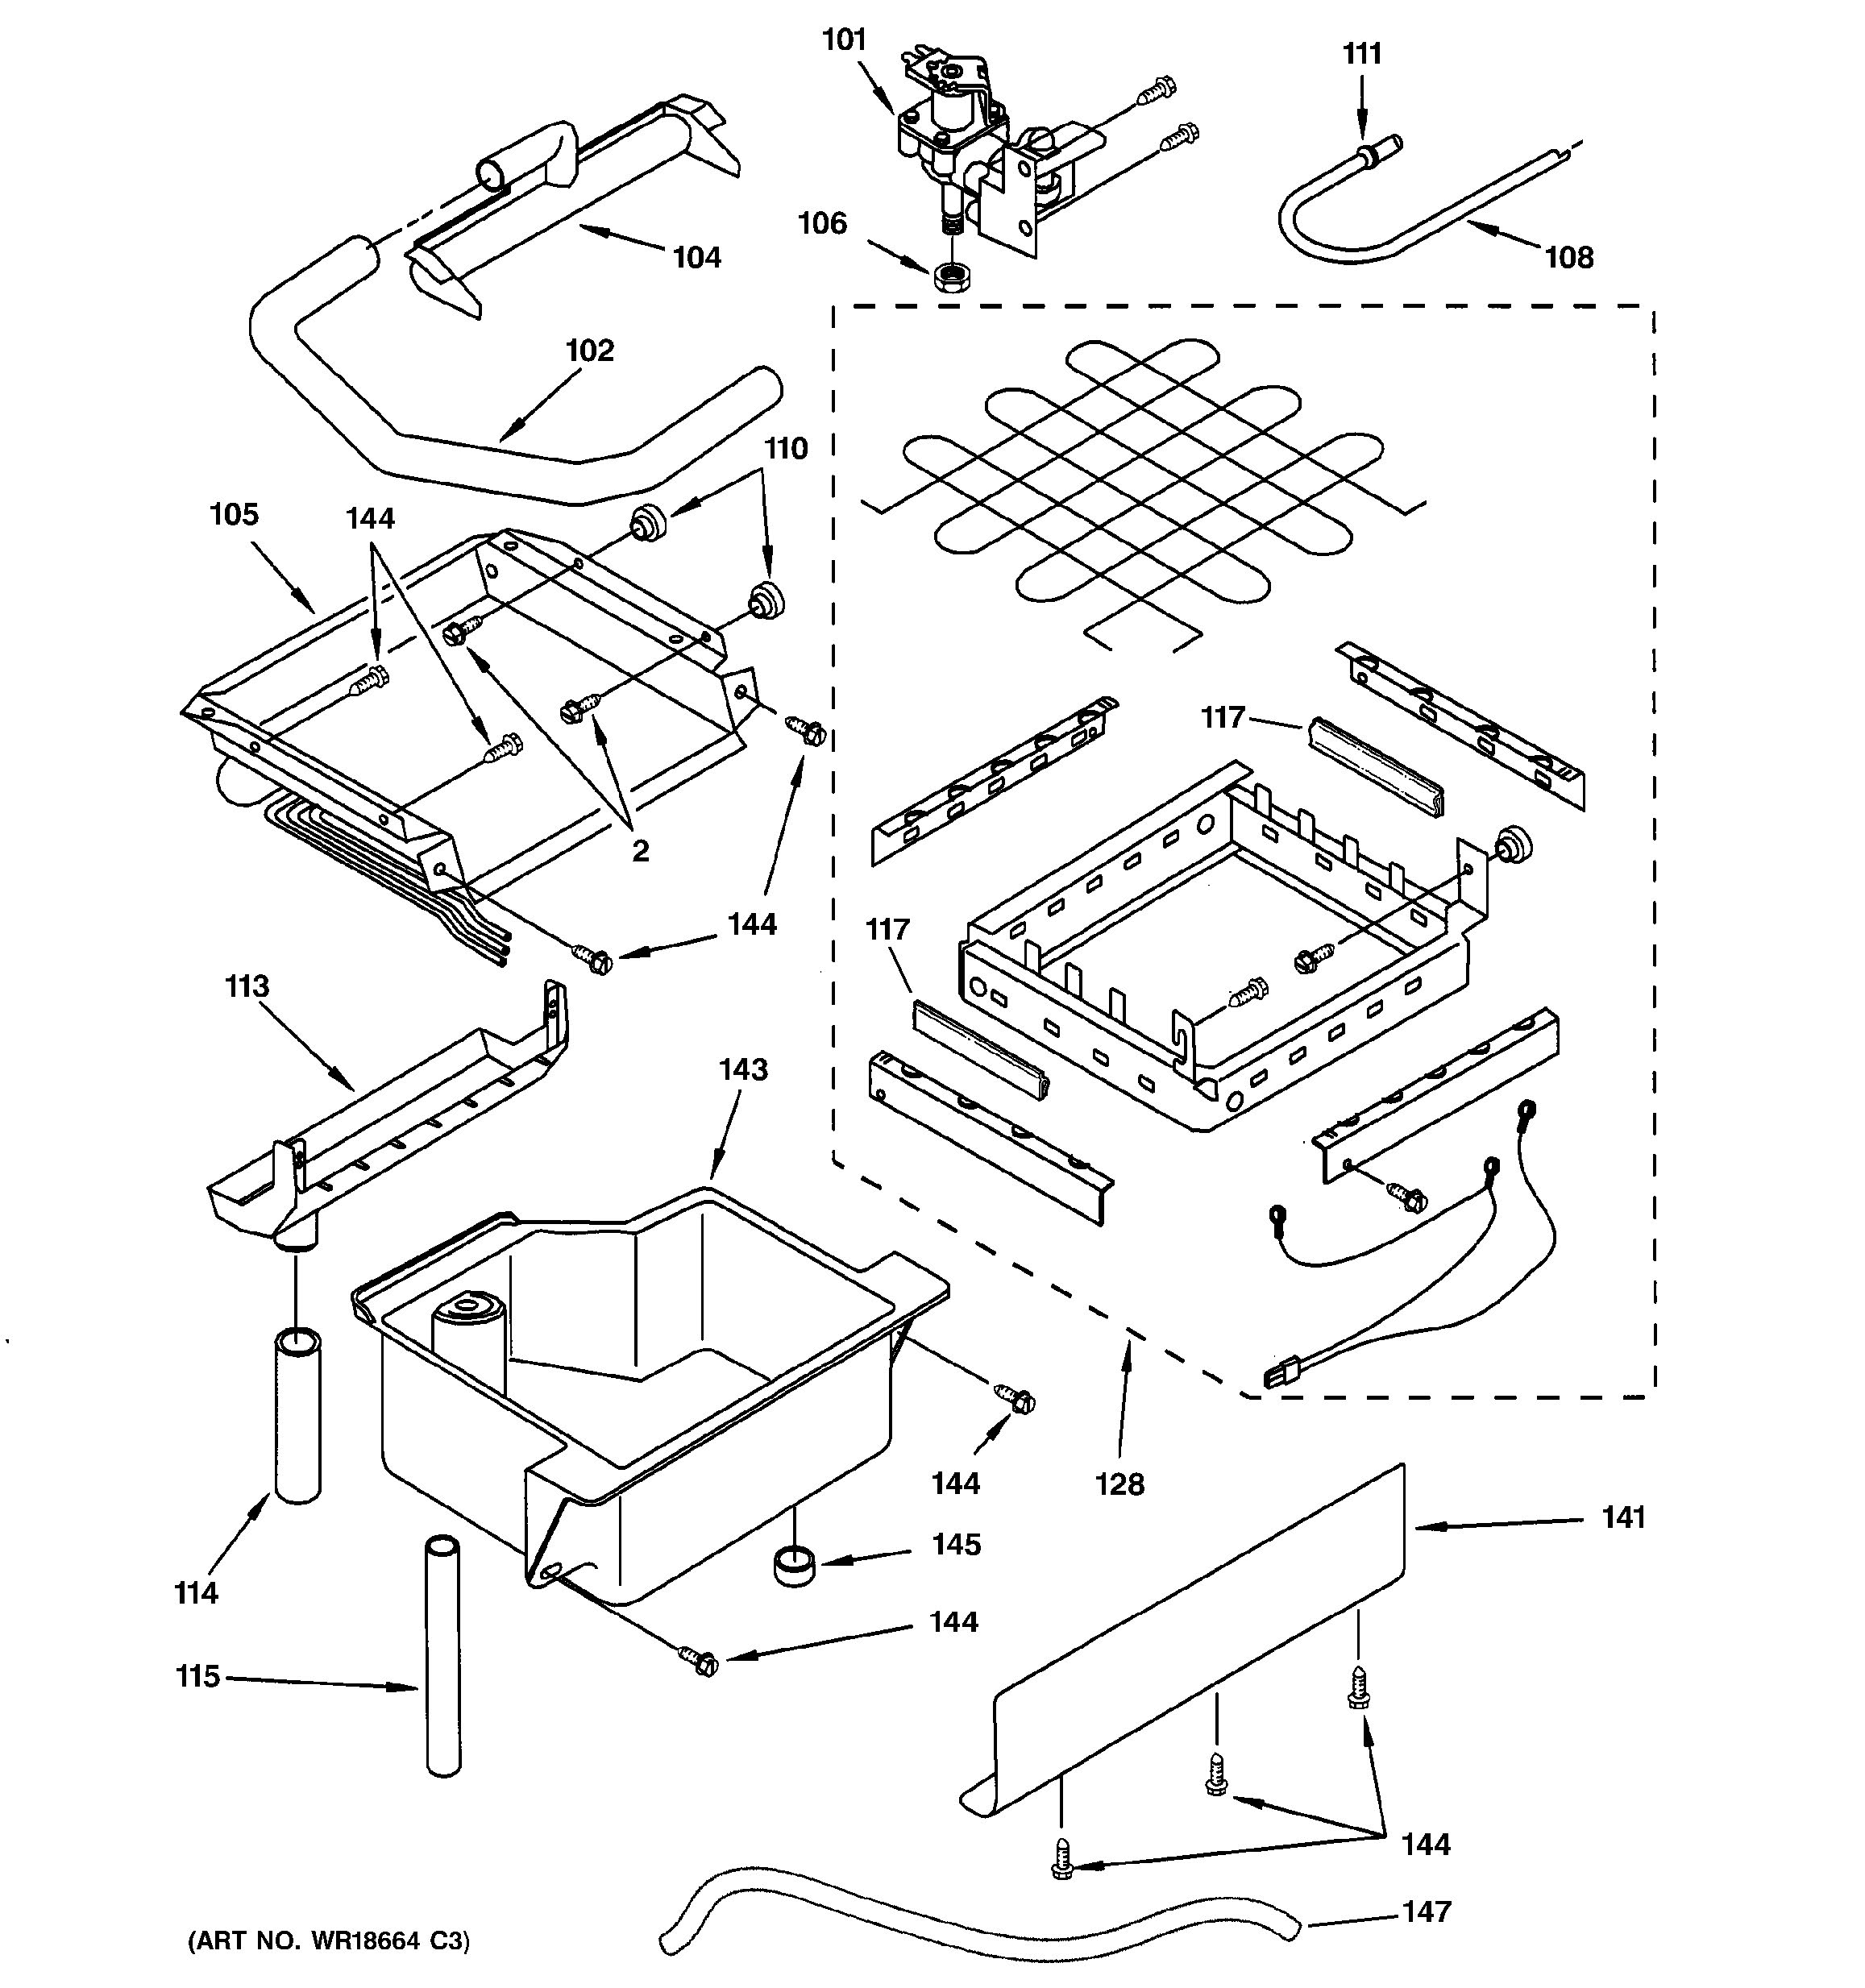 Assembly View For Evaporator Ice Cutter Grid Amp Water Parts